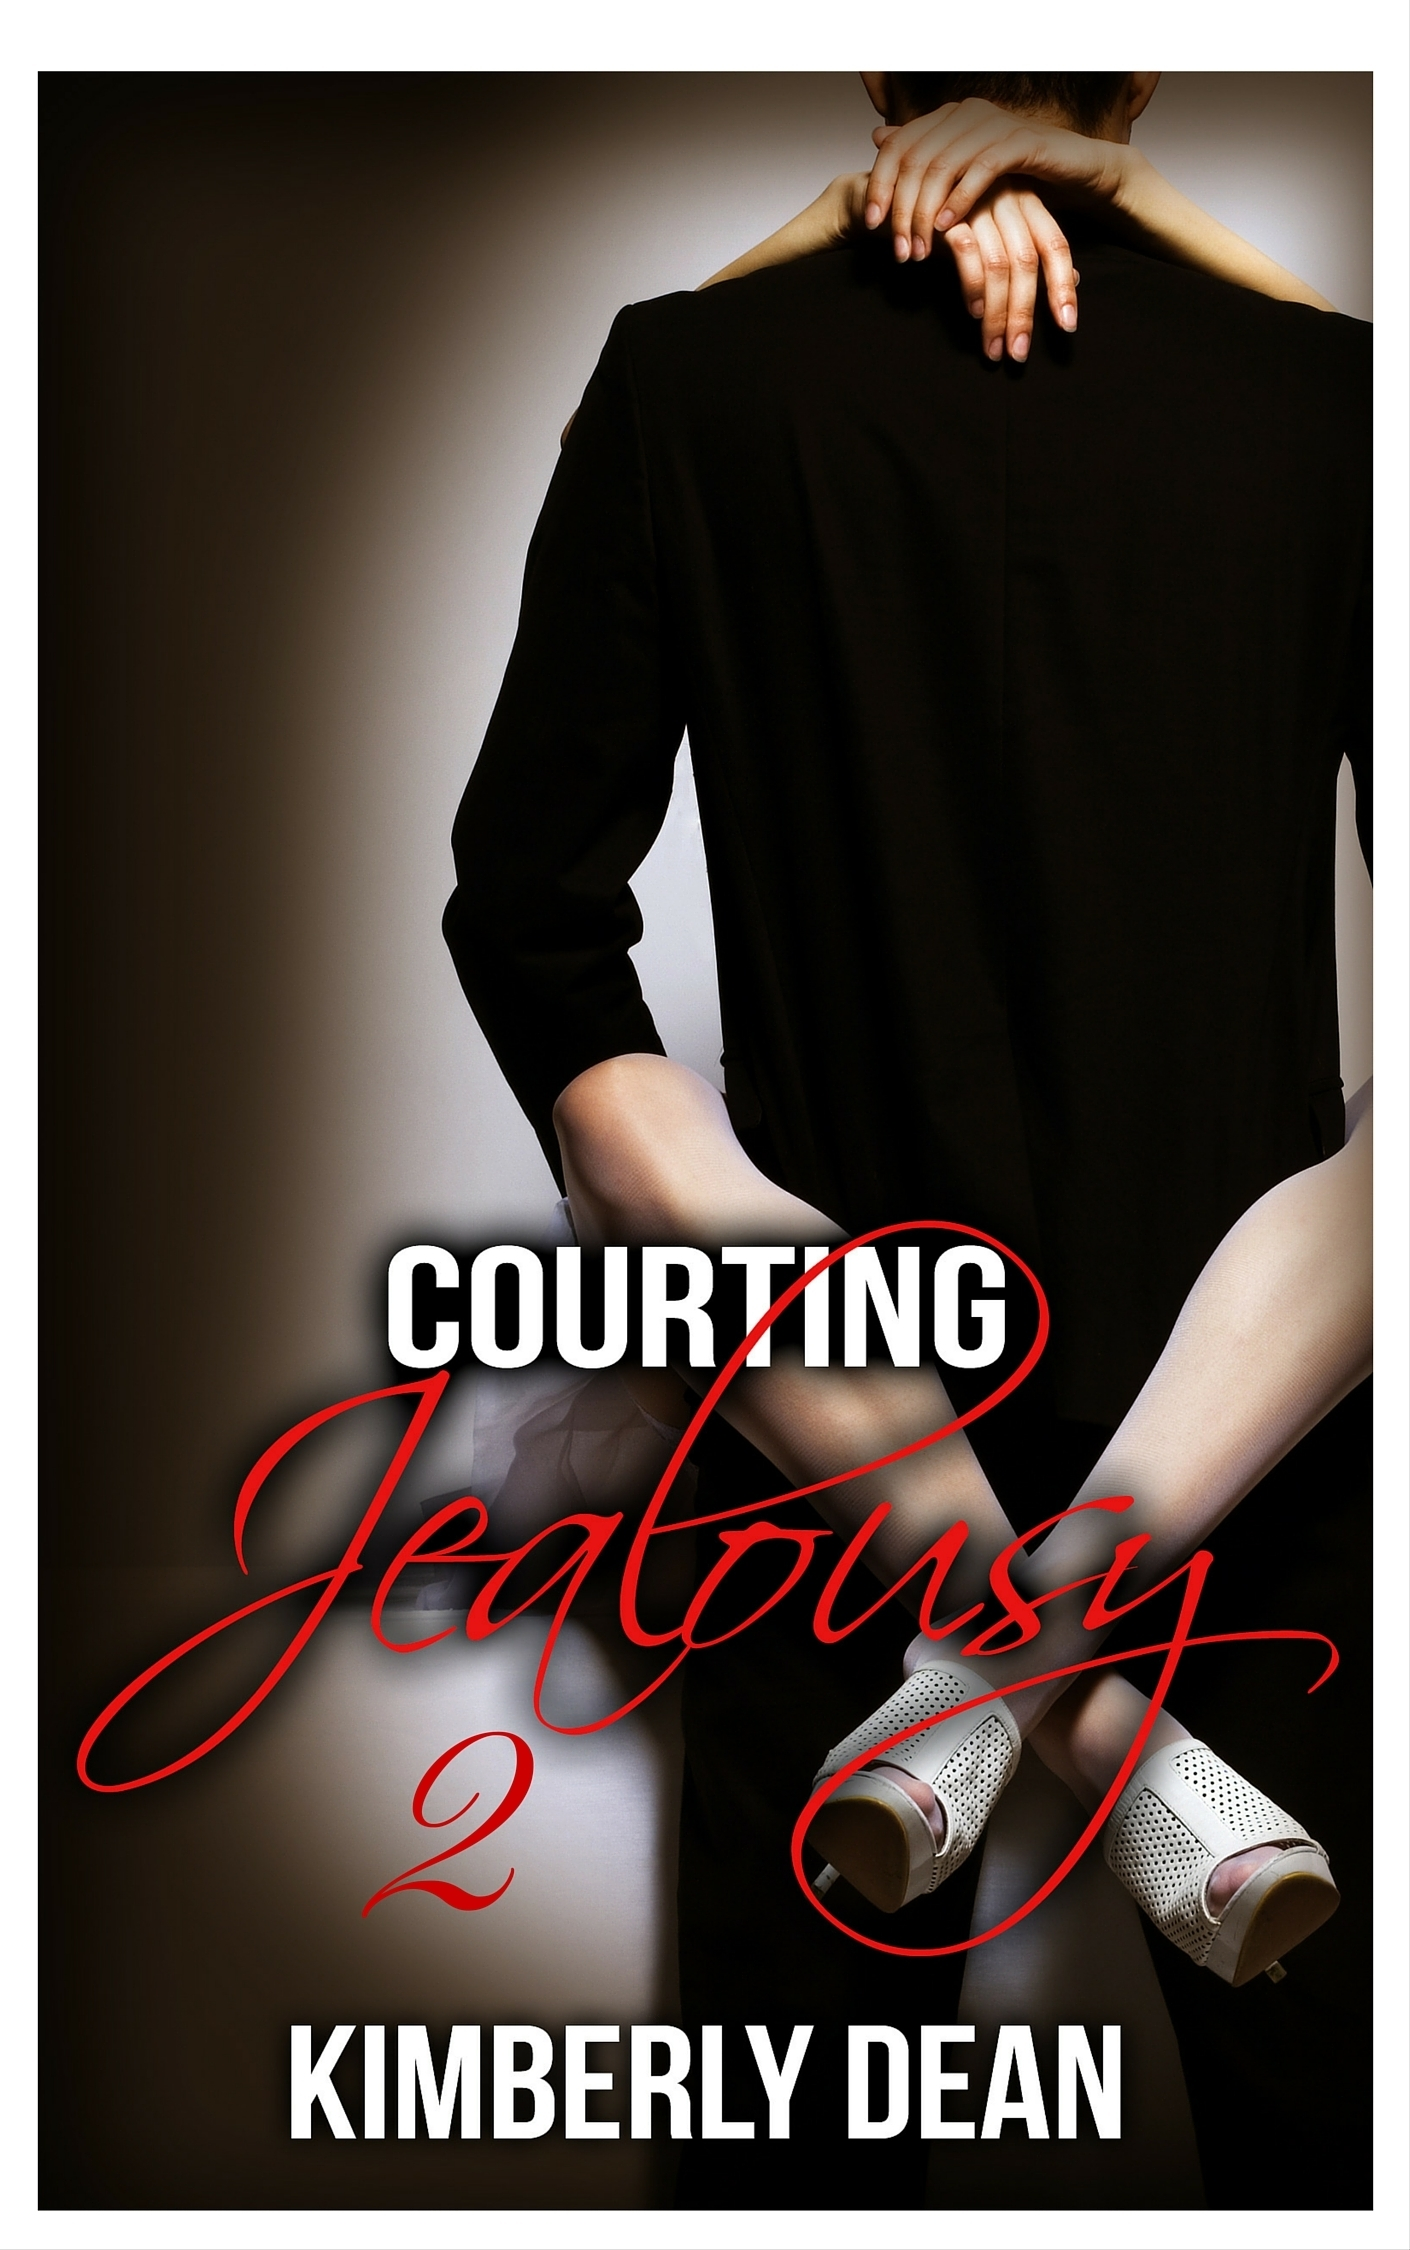 Courting Jealousy 2 Kimberly Dean